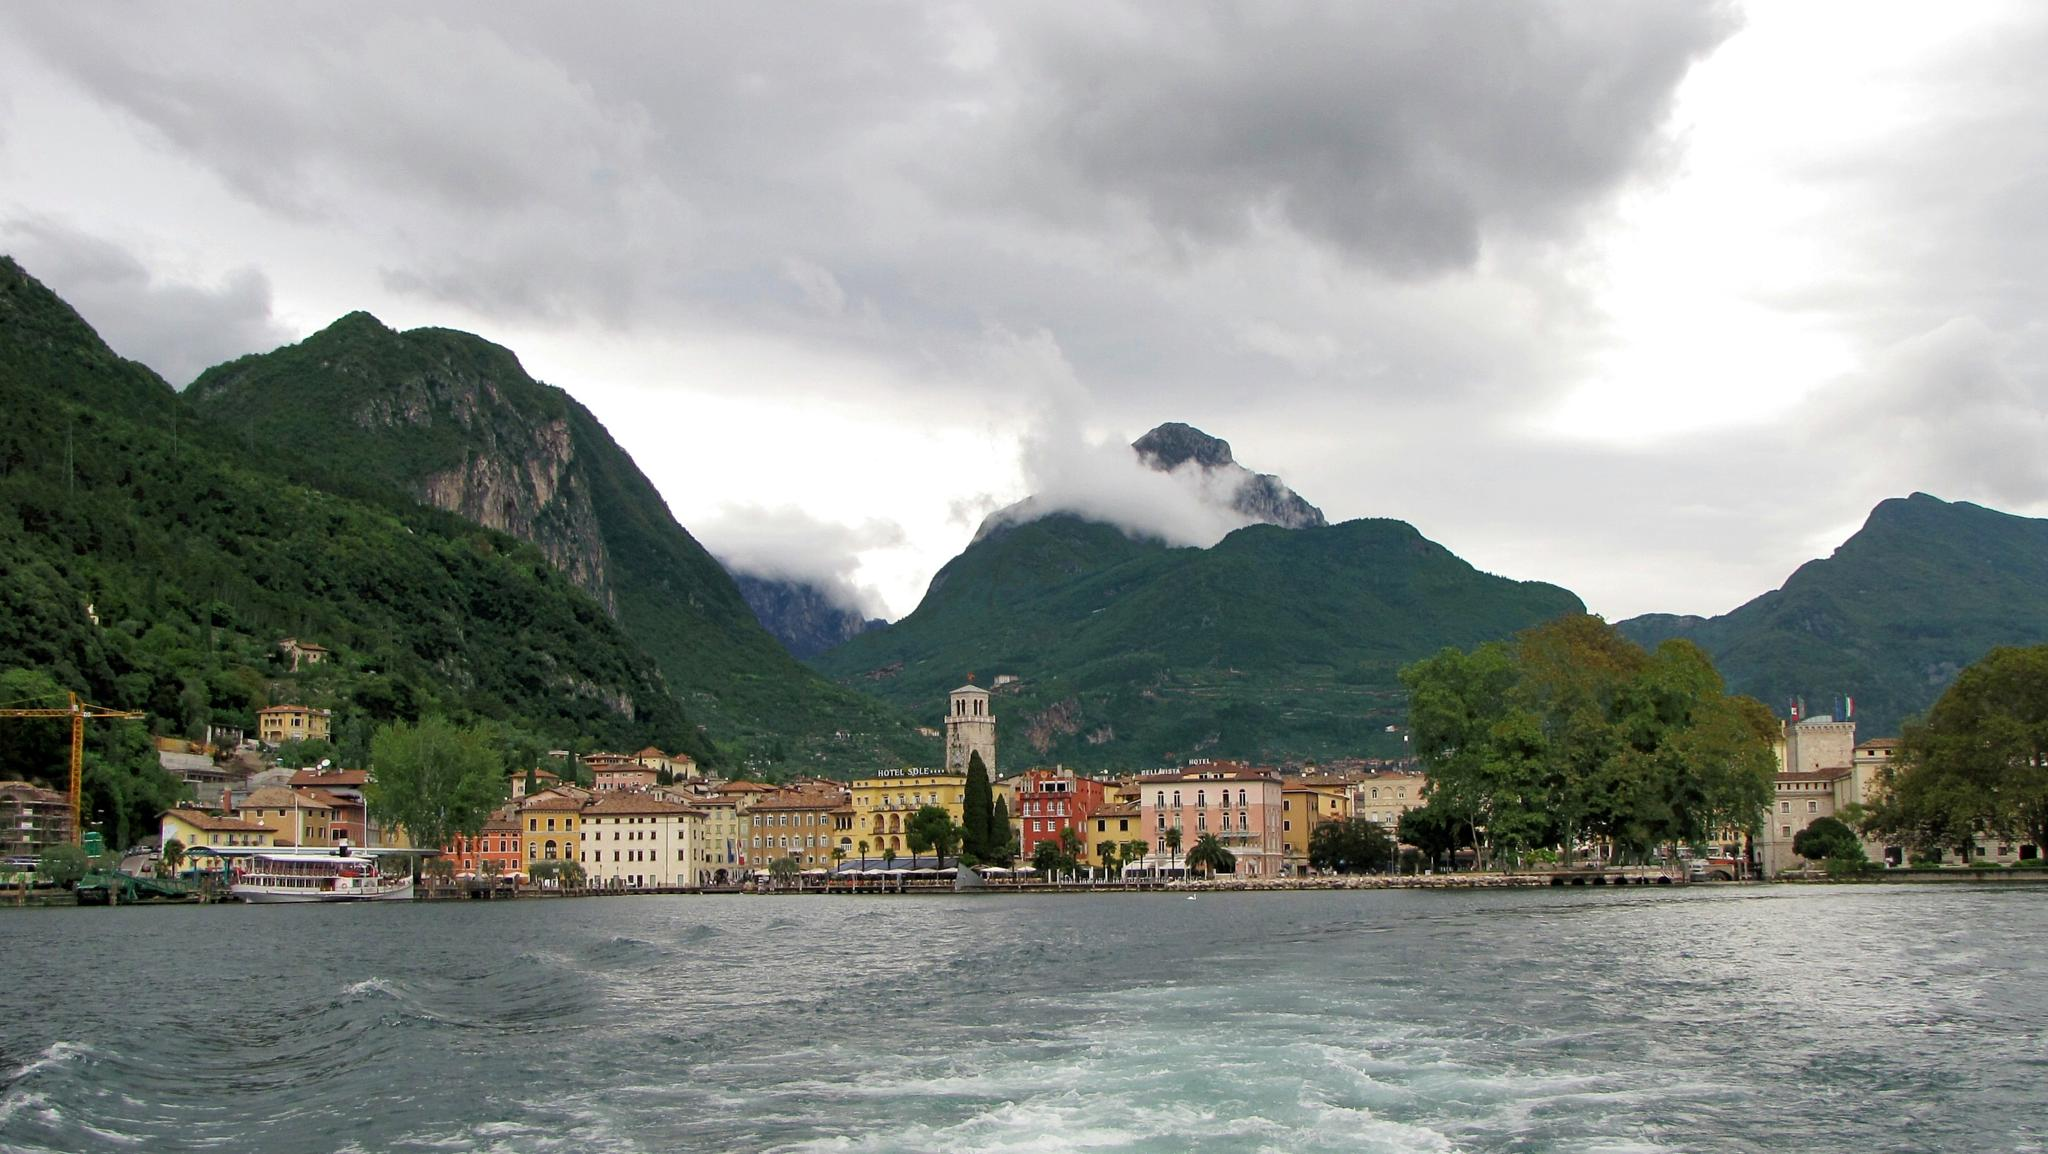 Riva - seen from lake Garda. Italy. by charles.fortescue.3